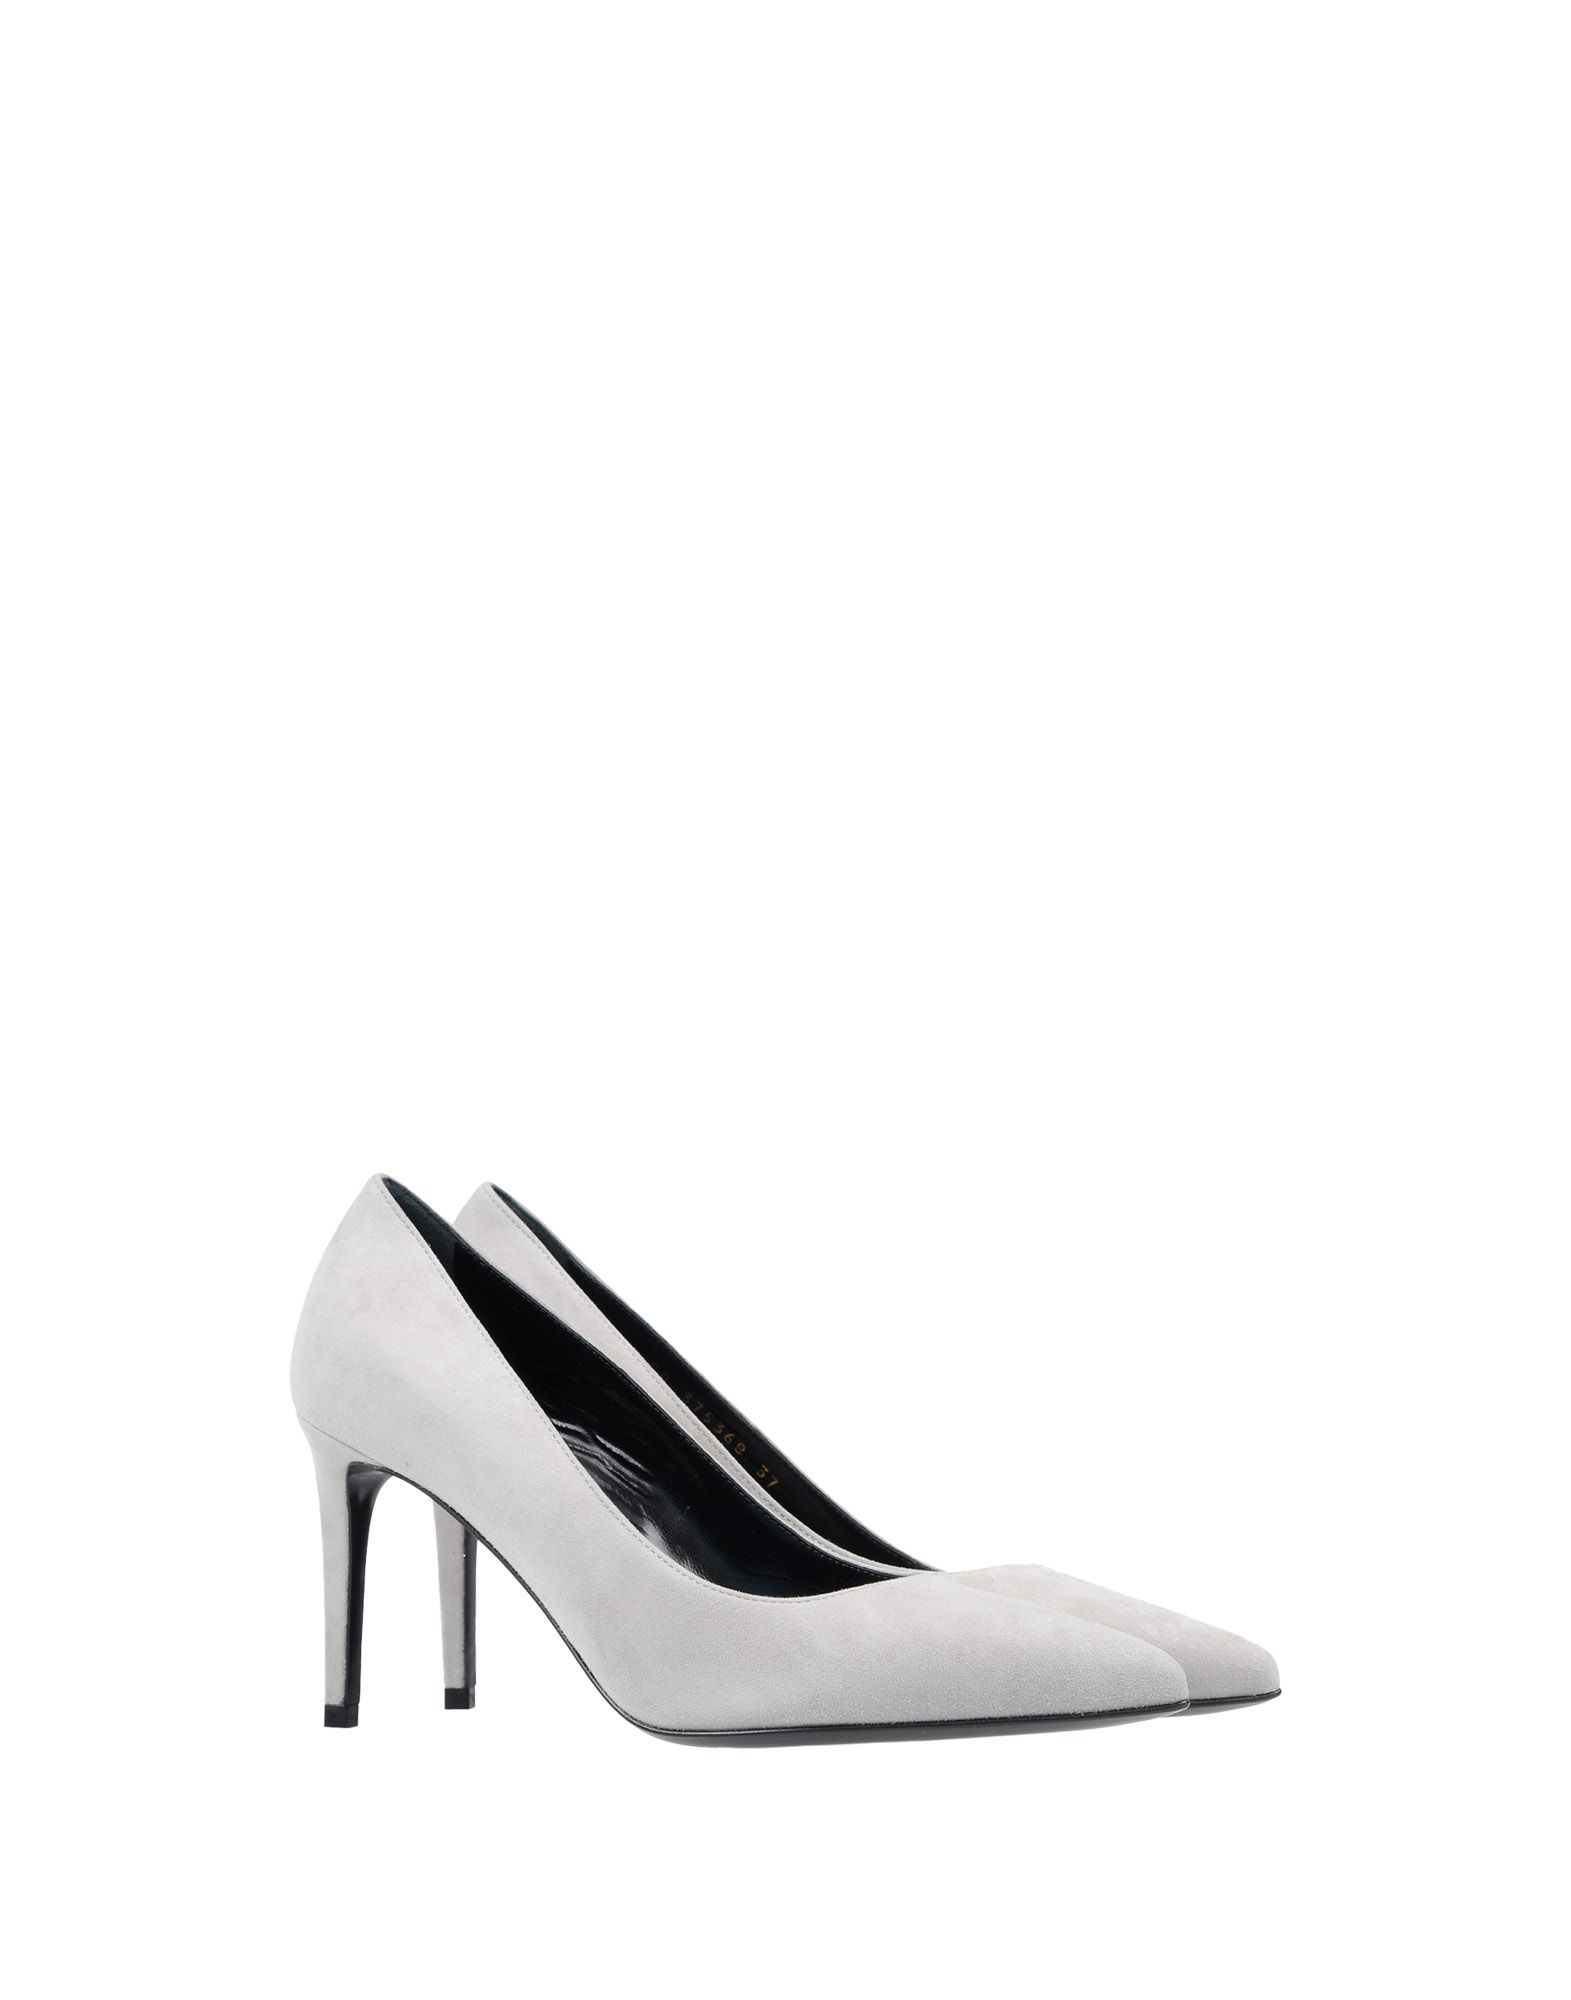 Saint Laurent Neue Pumps Damen  11483366UA Neue Laurent Schuhe 885006